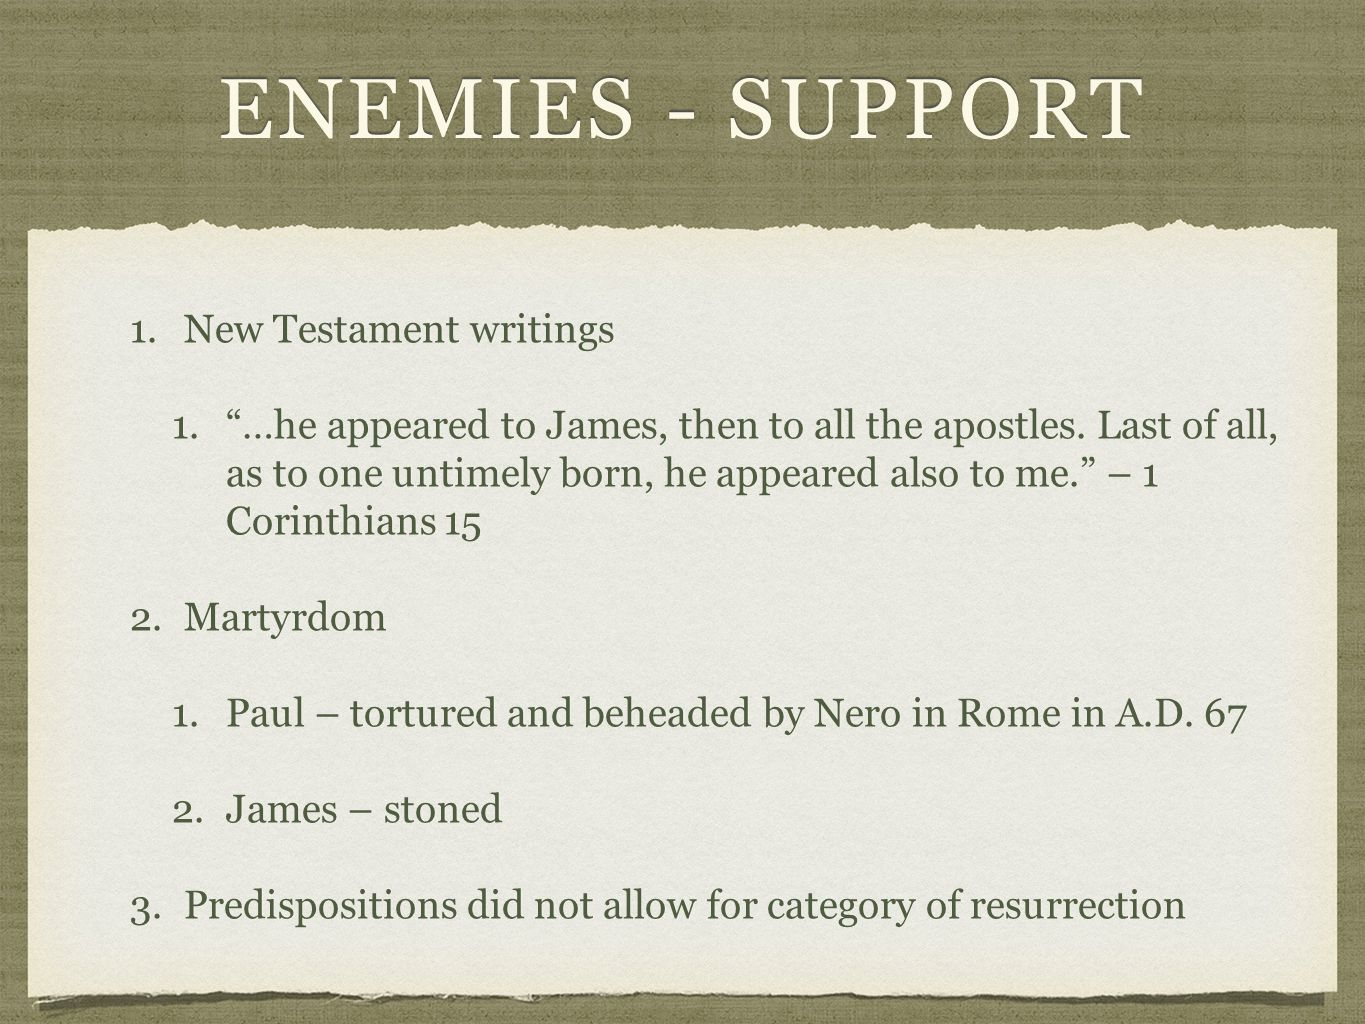 ENEMIES - SUPPORT 1.New Testament writings1.New Testament writings 1. …he appeared to James, then to all the apostles.